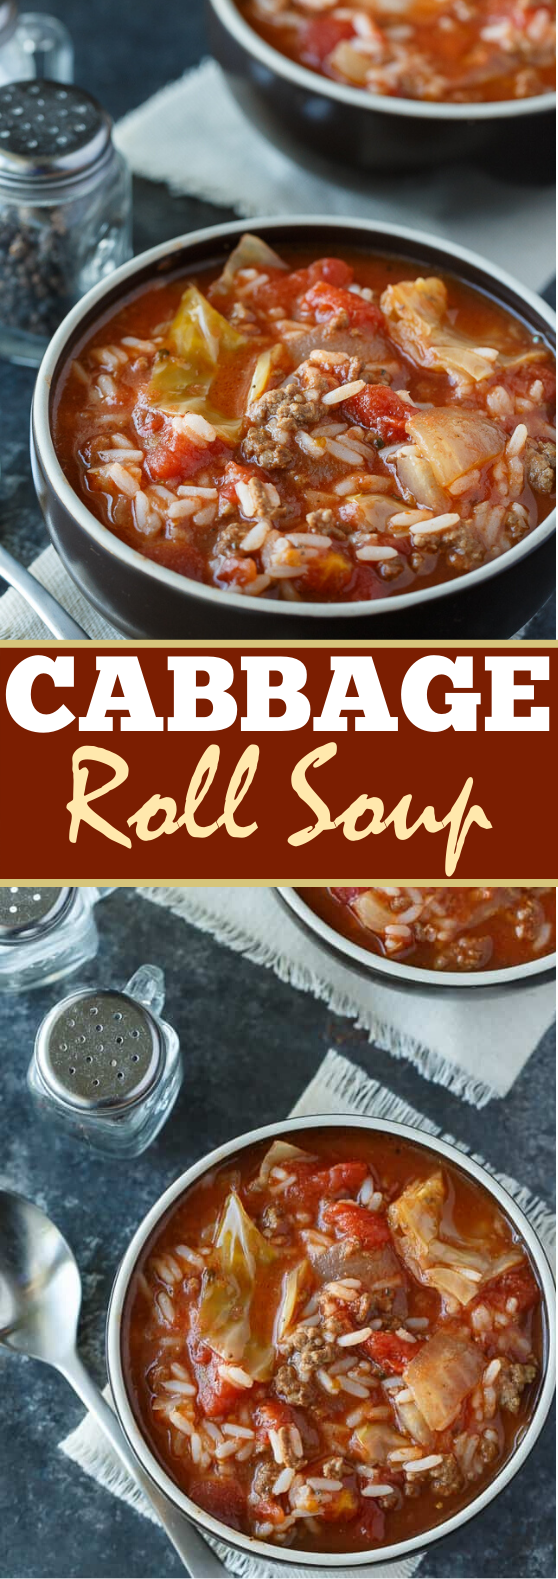 Cabbage Roll Soup #dinner #comfortfood #soup #weeknight #easy